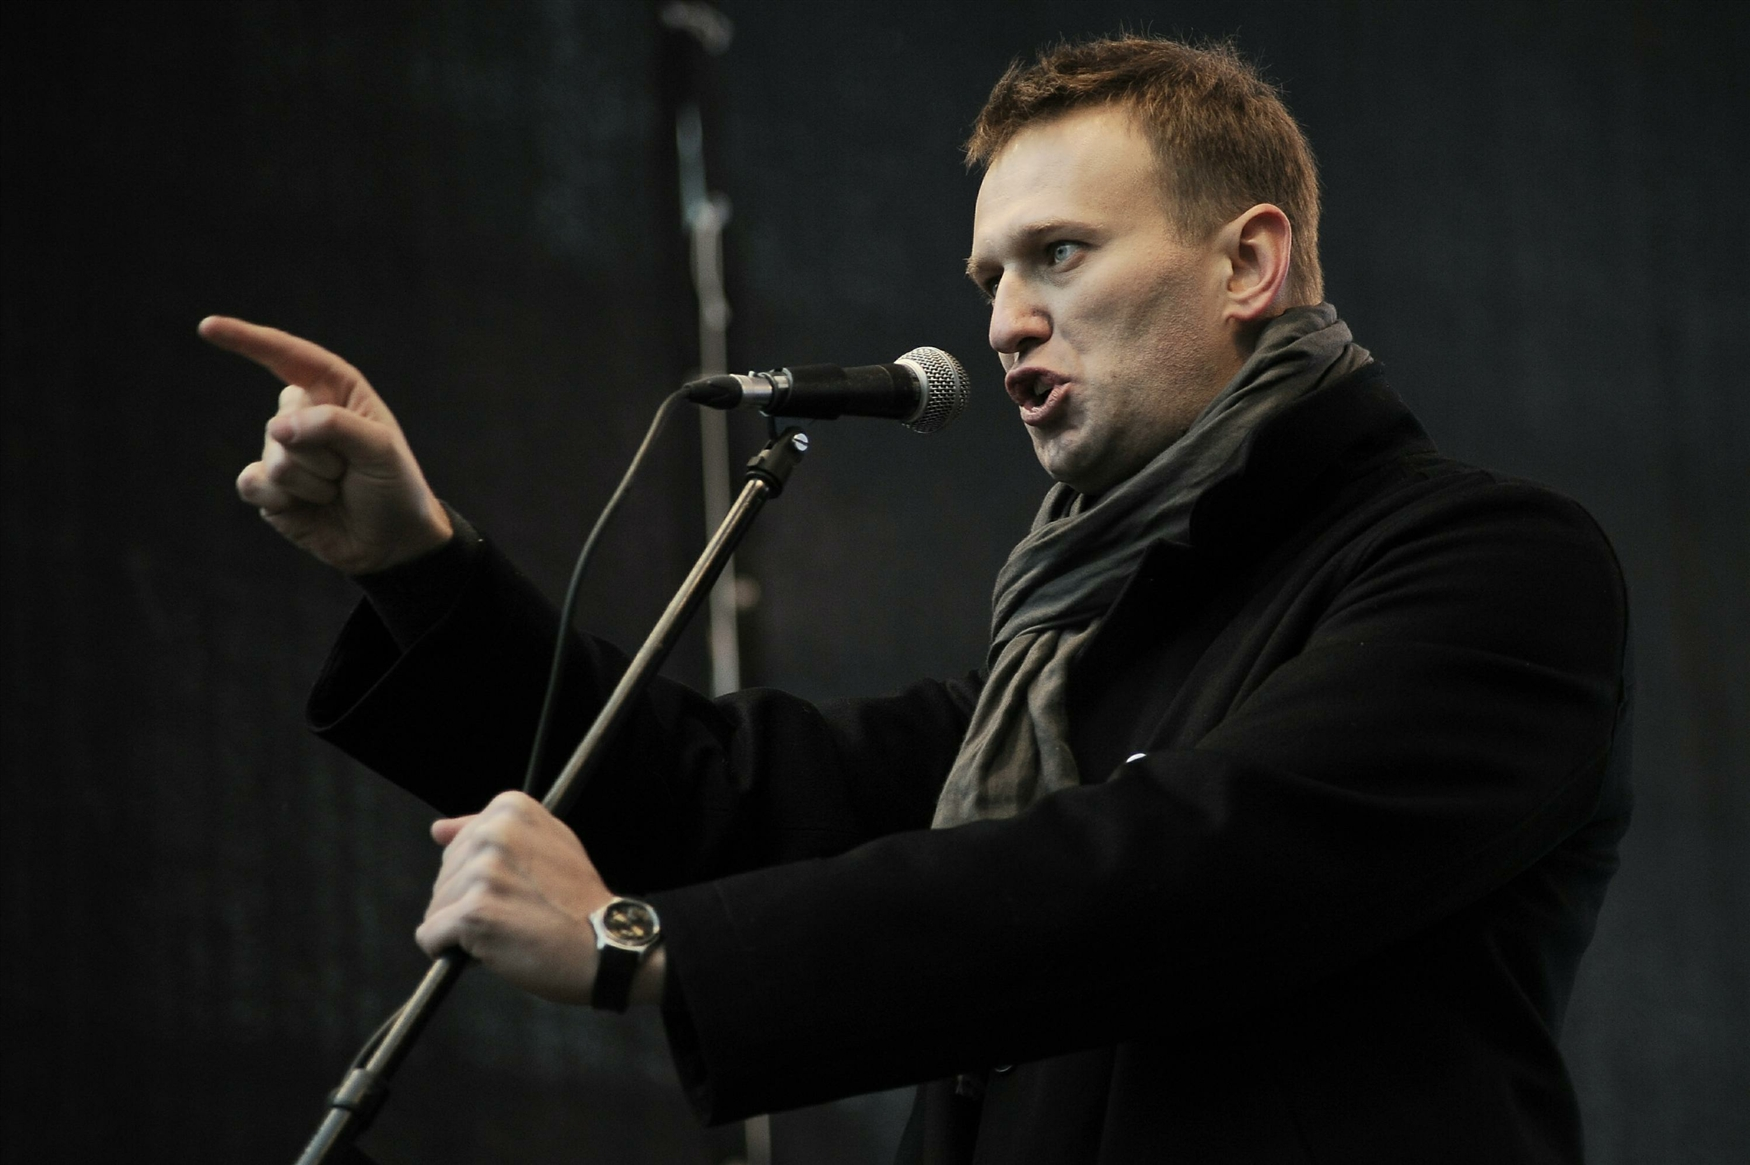 Aleksey Navalny, photo taken on a protest meeting in Dec 2011